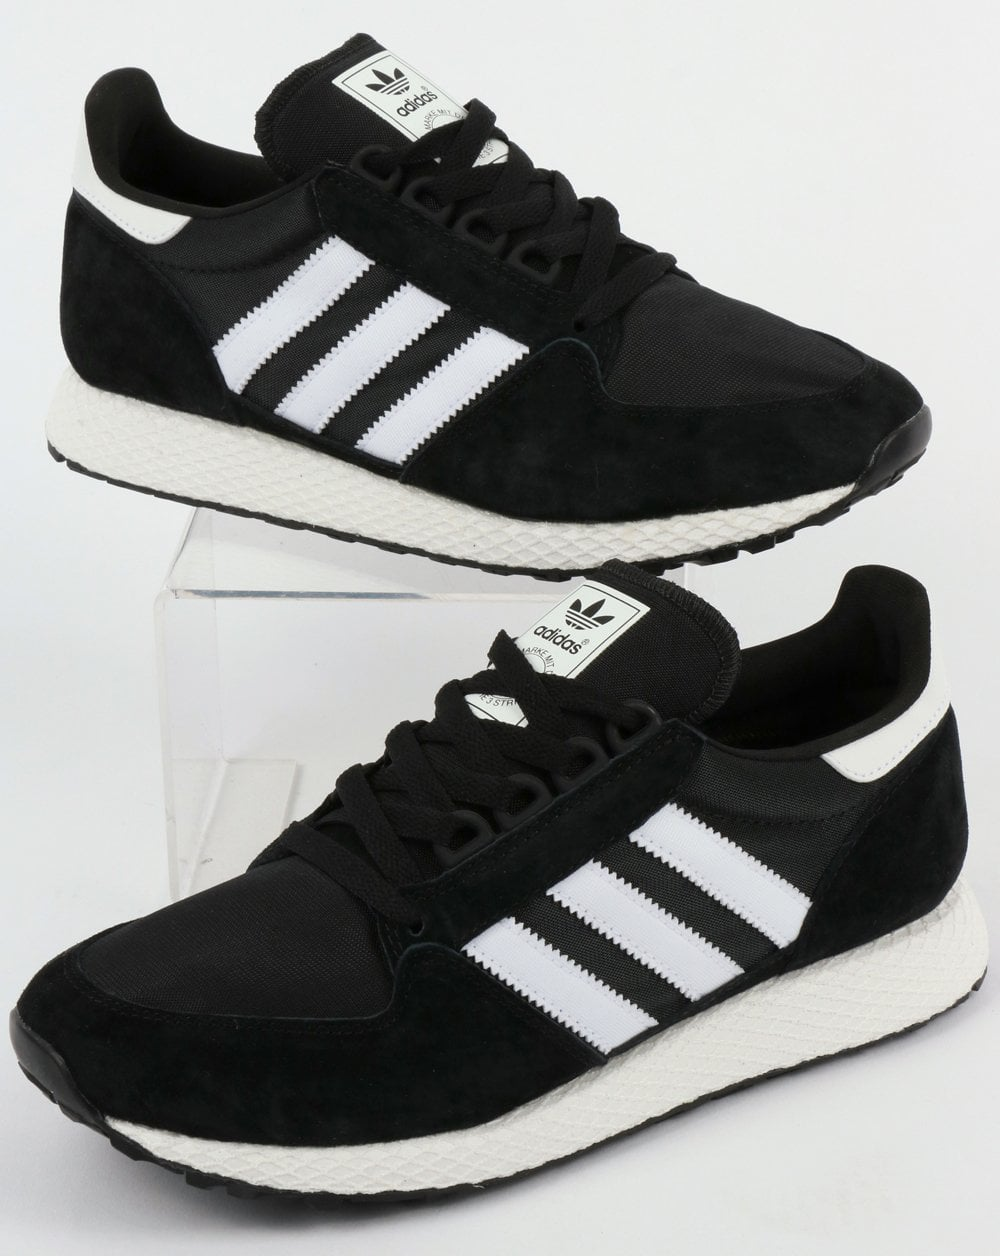 Adidas Forest Grove Trainers Black White 5b8f0a703